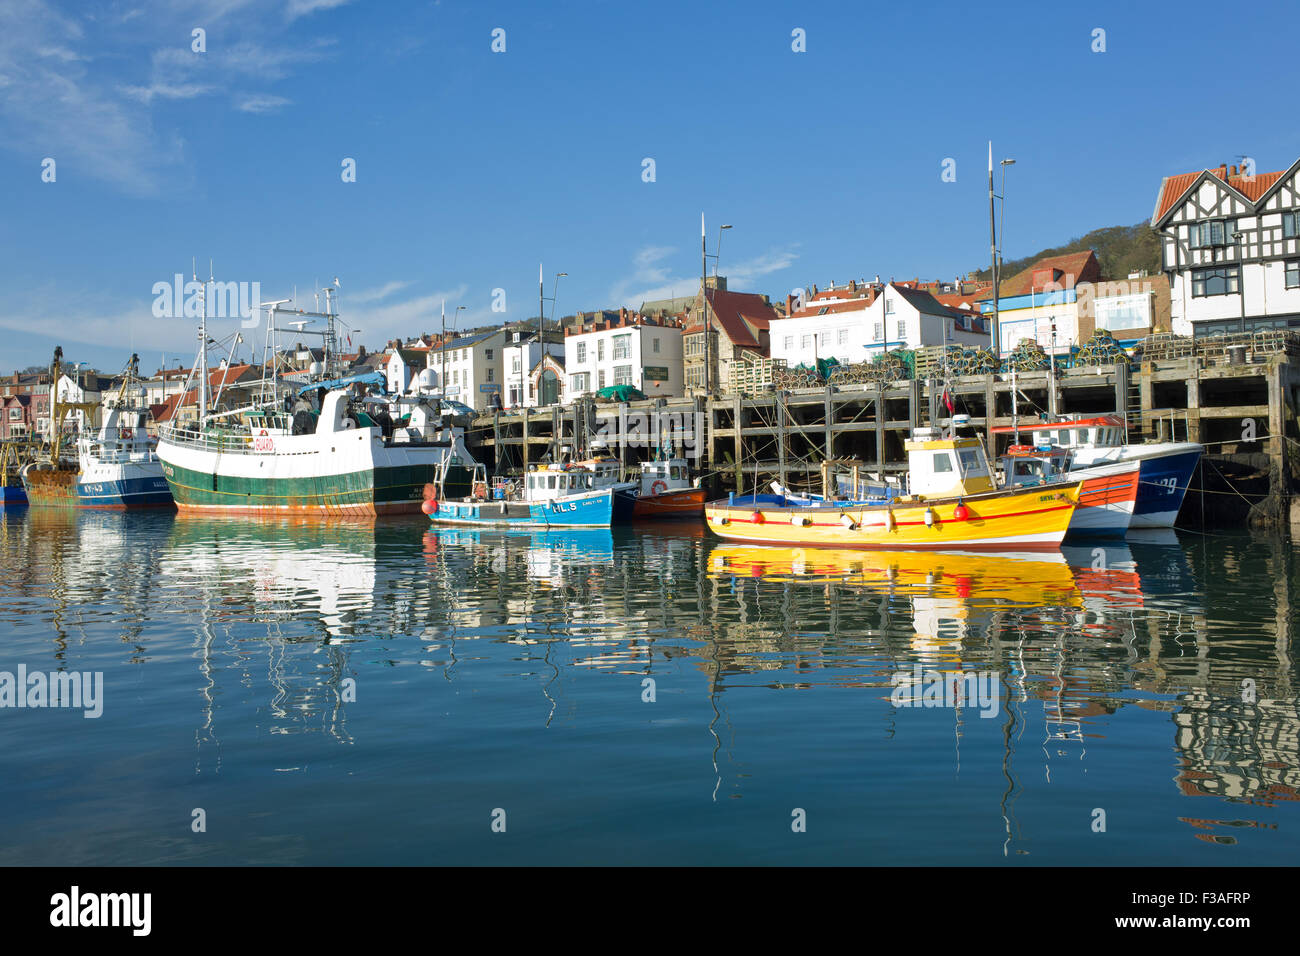 Fishing Boats in Scarborough Harbour UK Stock Photo